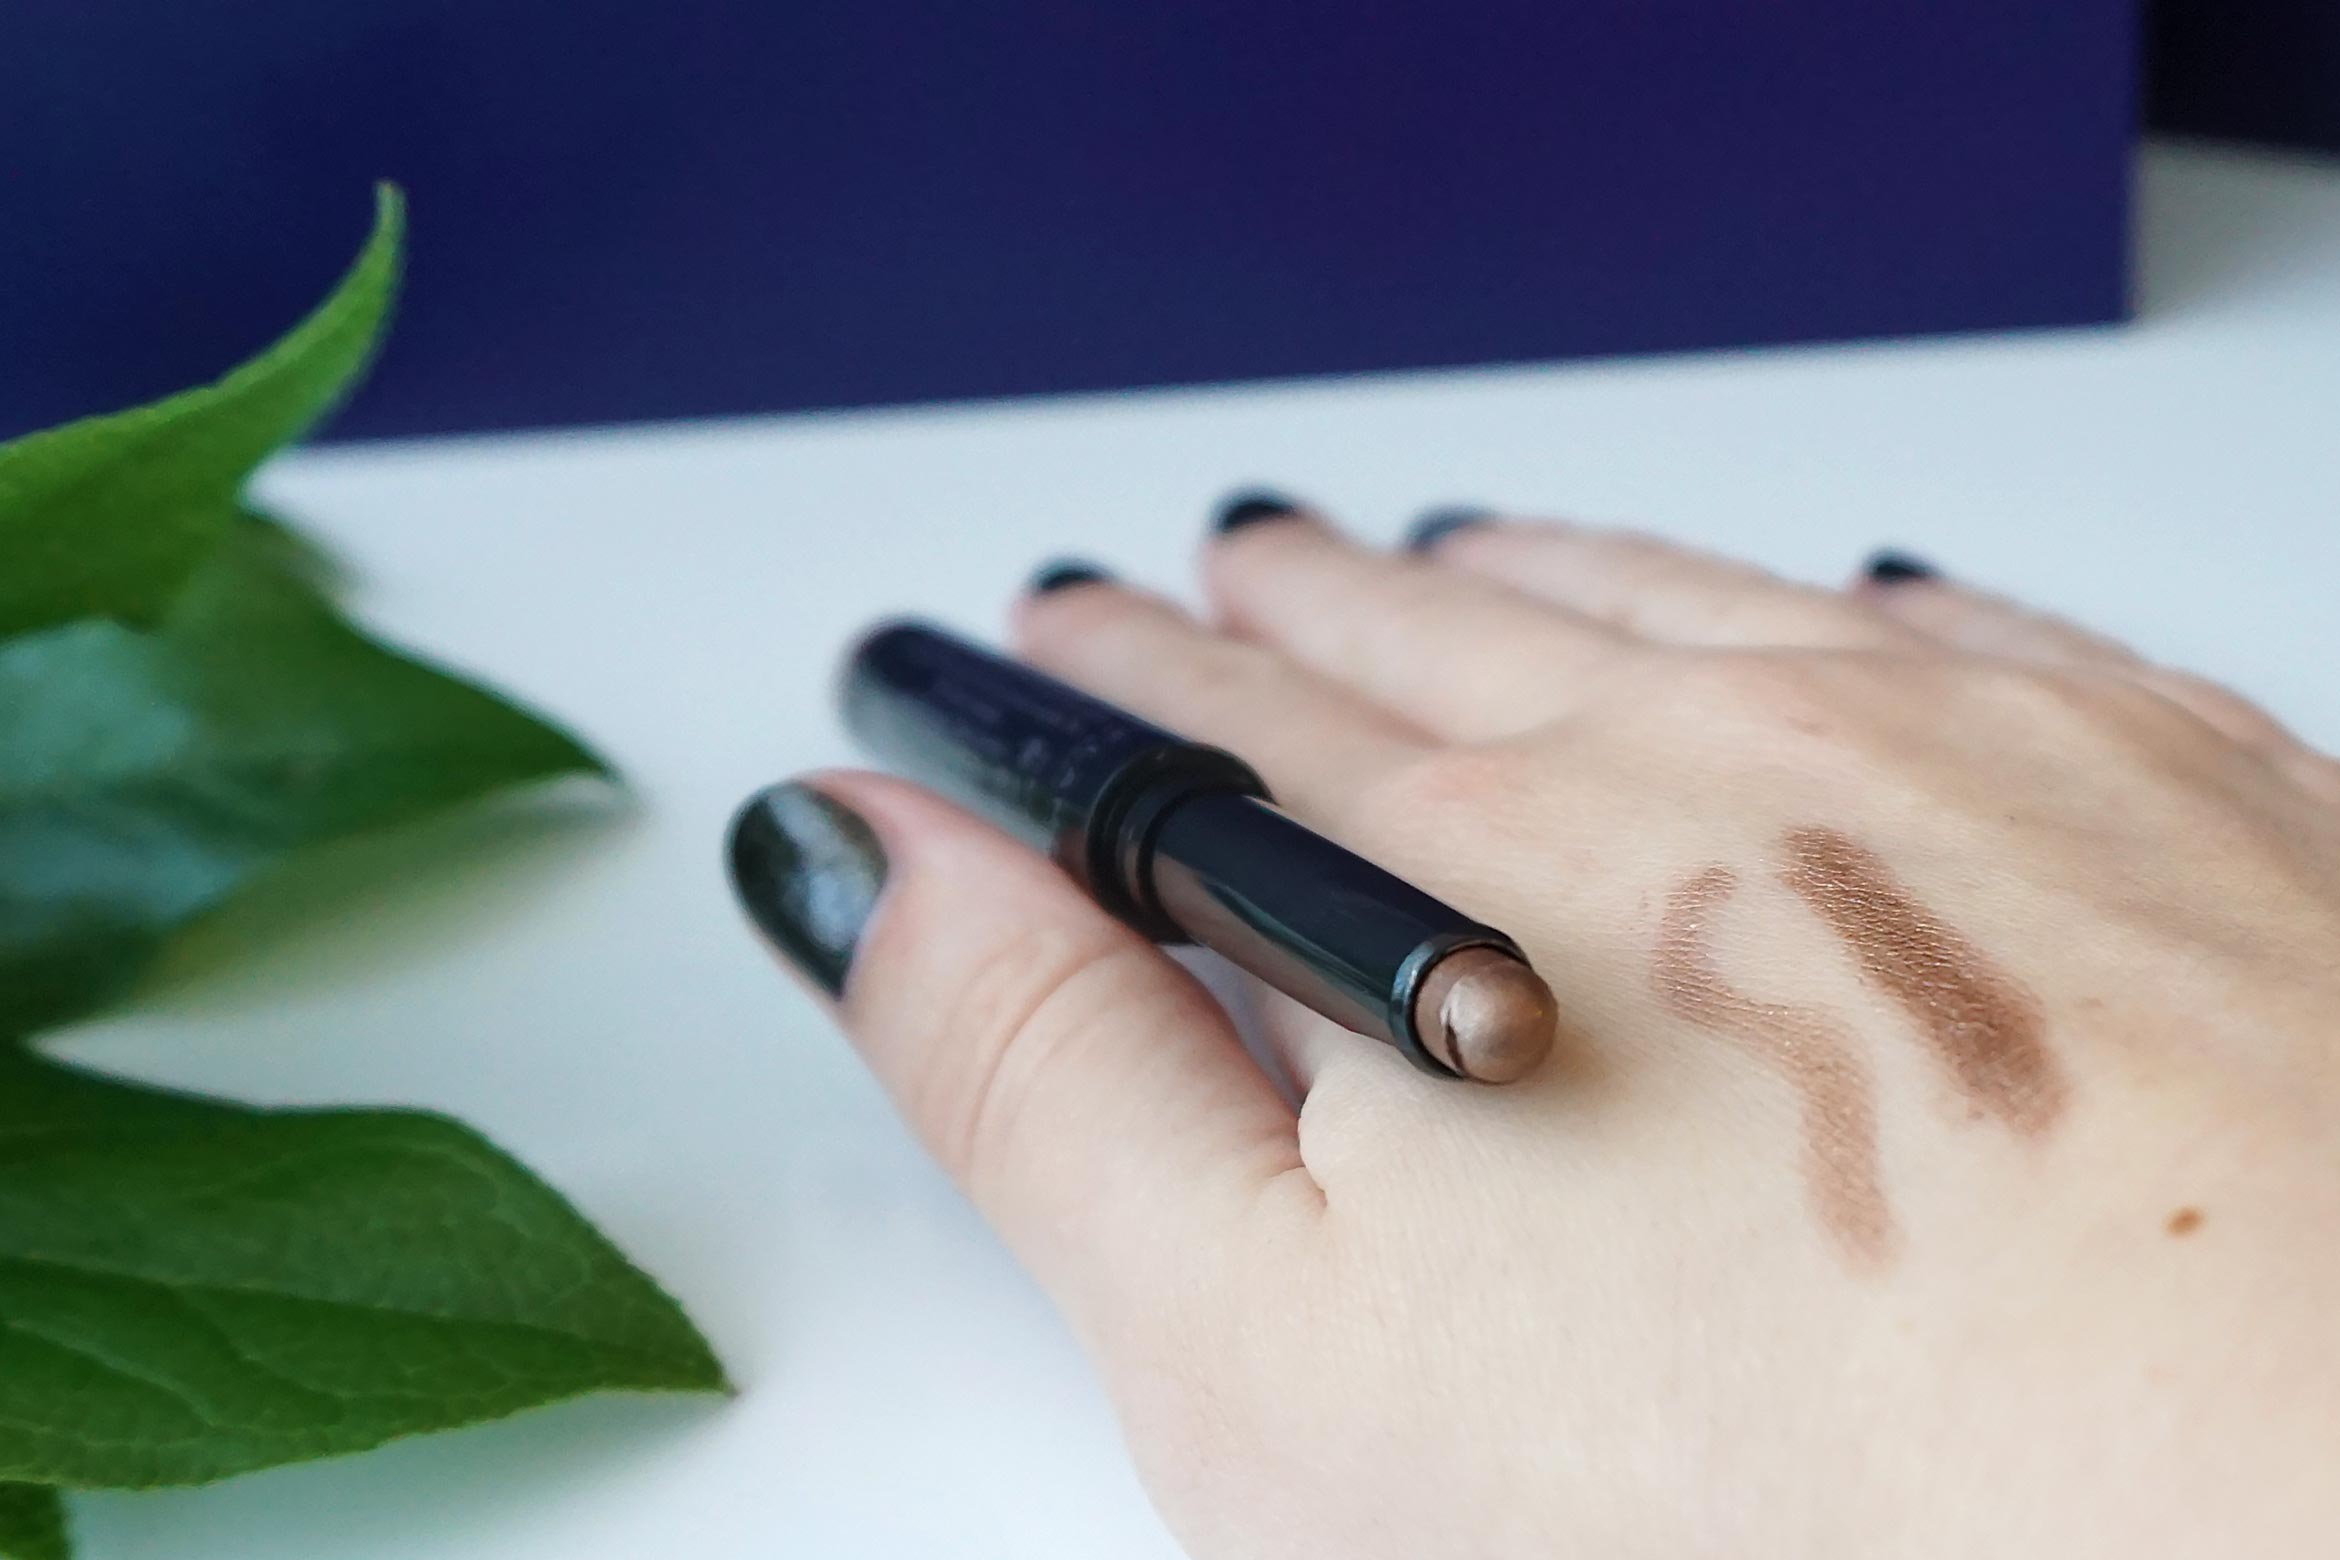 oriflame-colour-unlimited-eye-shadow-stick-swatch-review